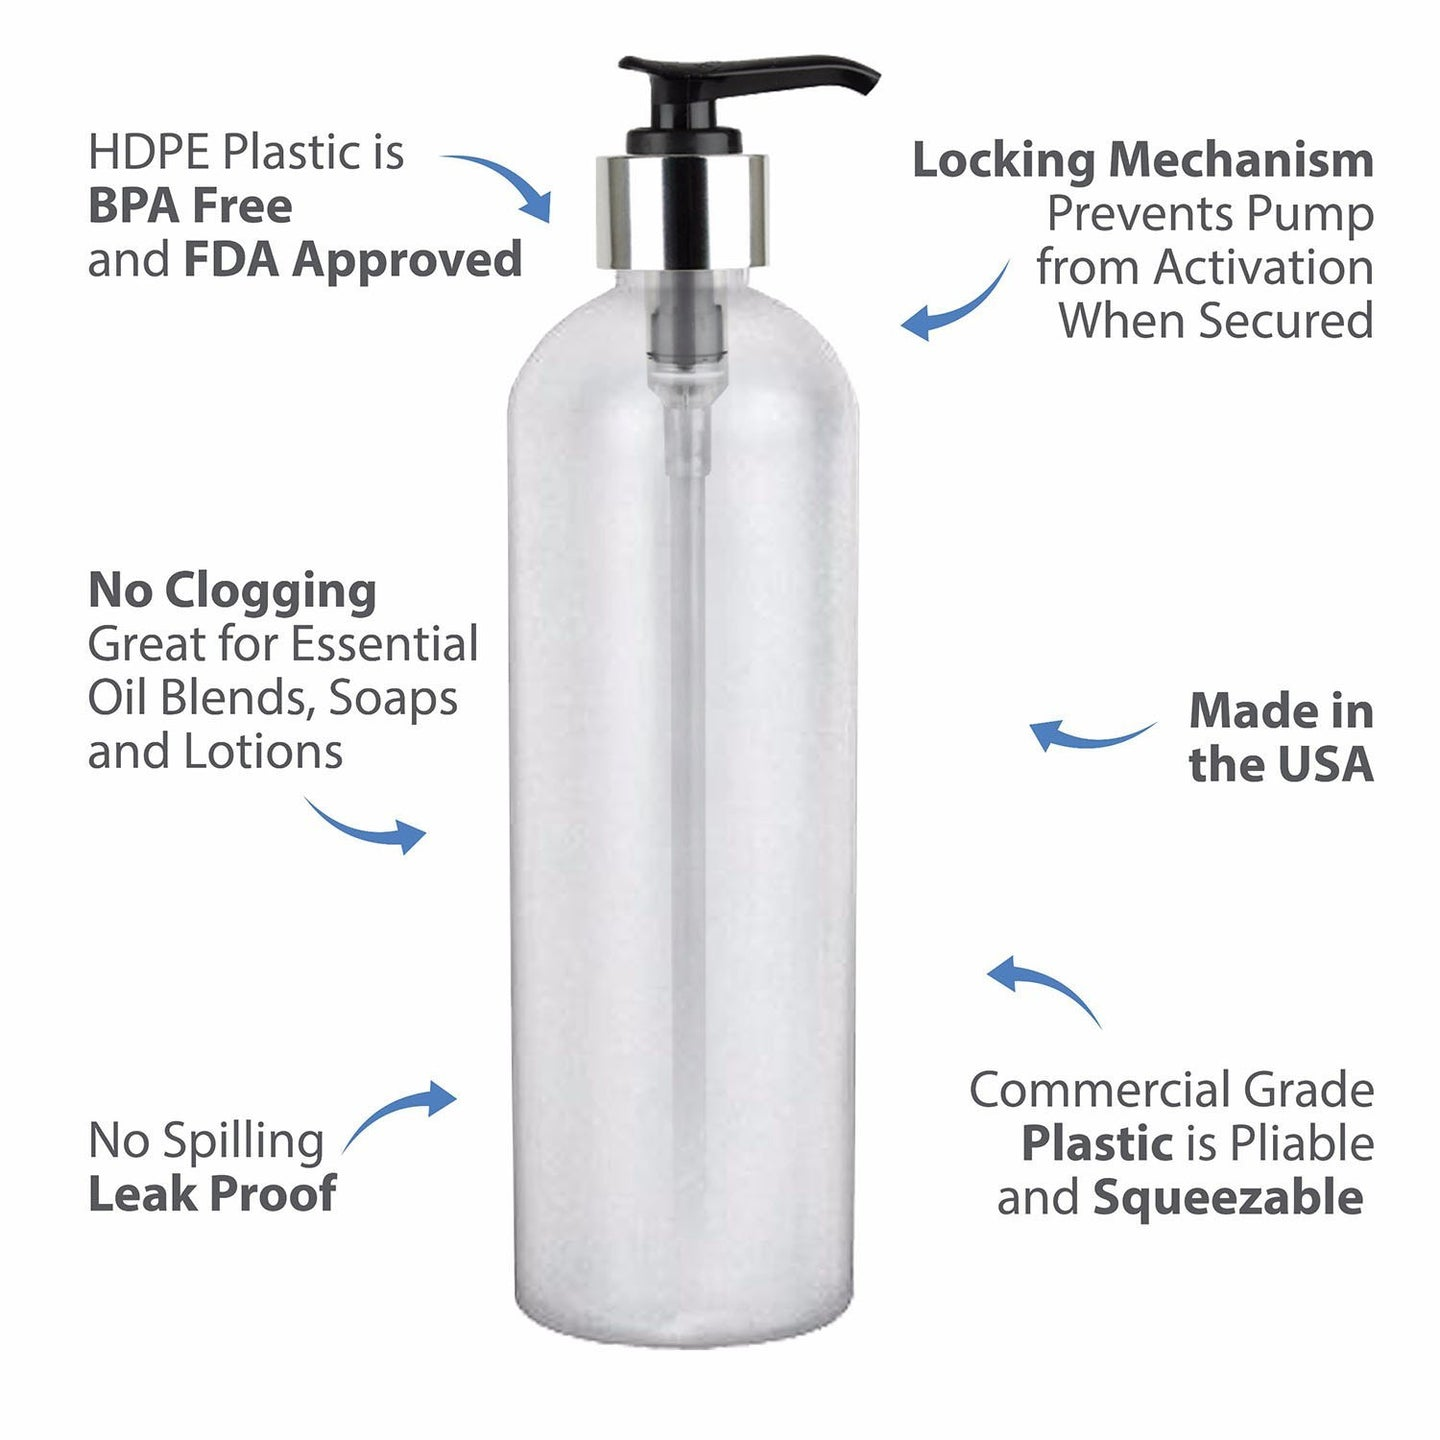 MoYo Natural Labs 16 oz Pump Dispenser, Empty Soap and Lotion Bottle with Locking Cap, BPA Free HDPE Plastic Containers for Essential Oils/Liquids (Pack of 1, Translucent White)